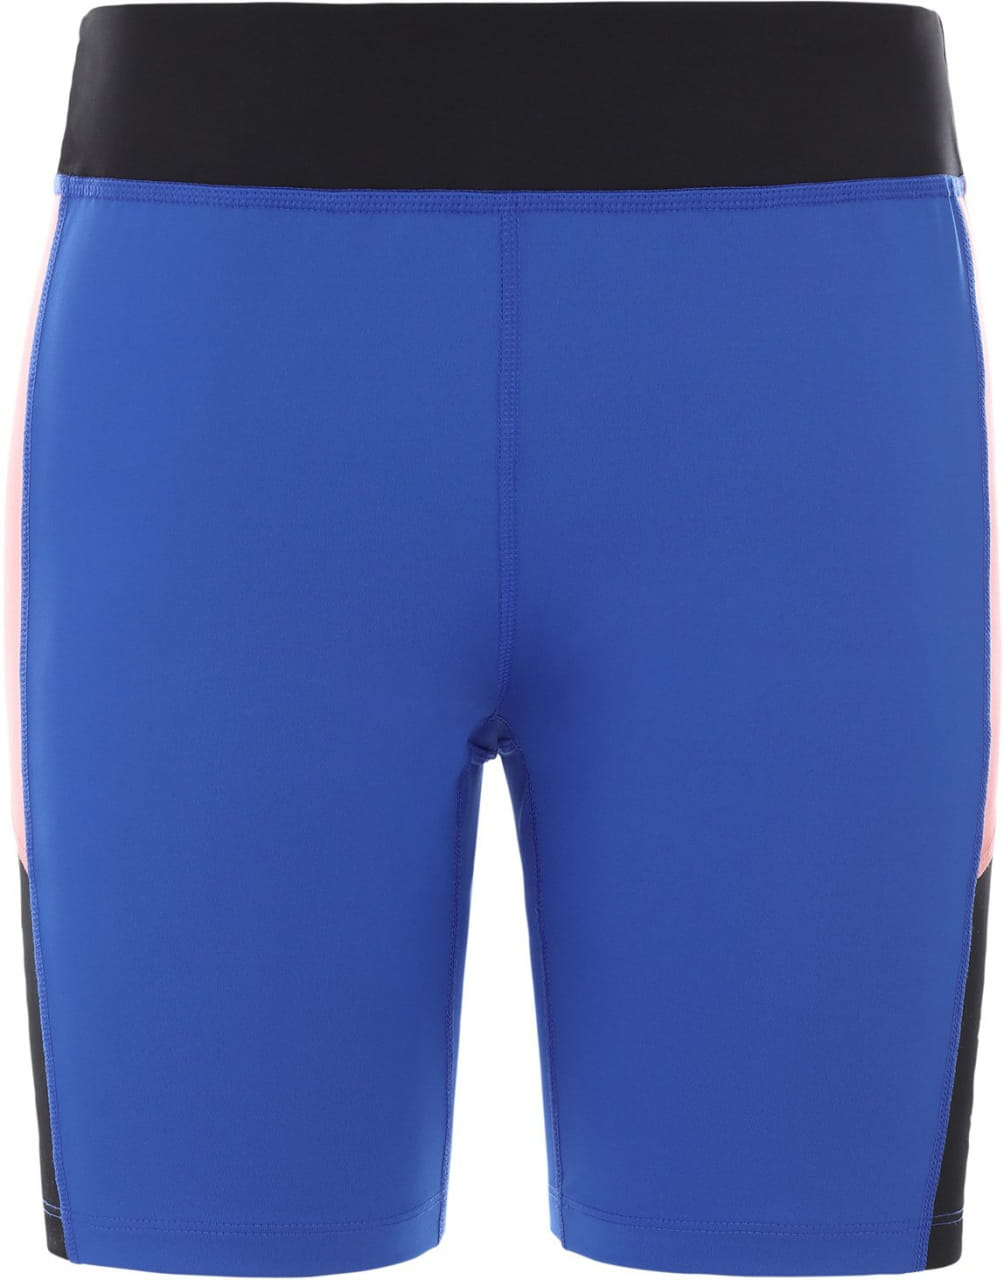 Shorts The North Face Women's '92 Extreme Knit Shorts